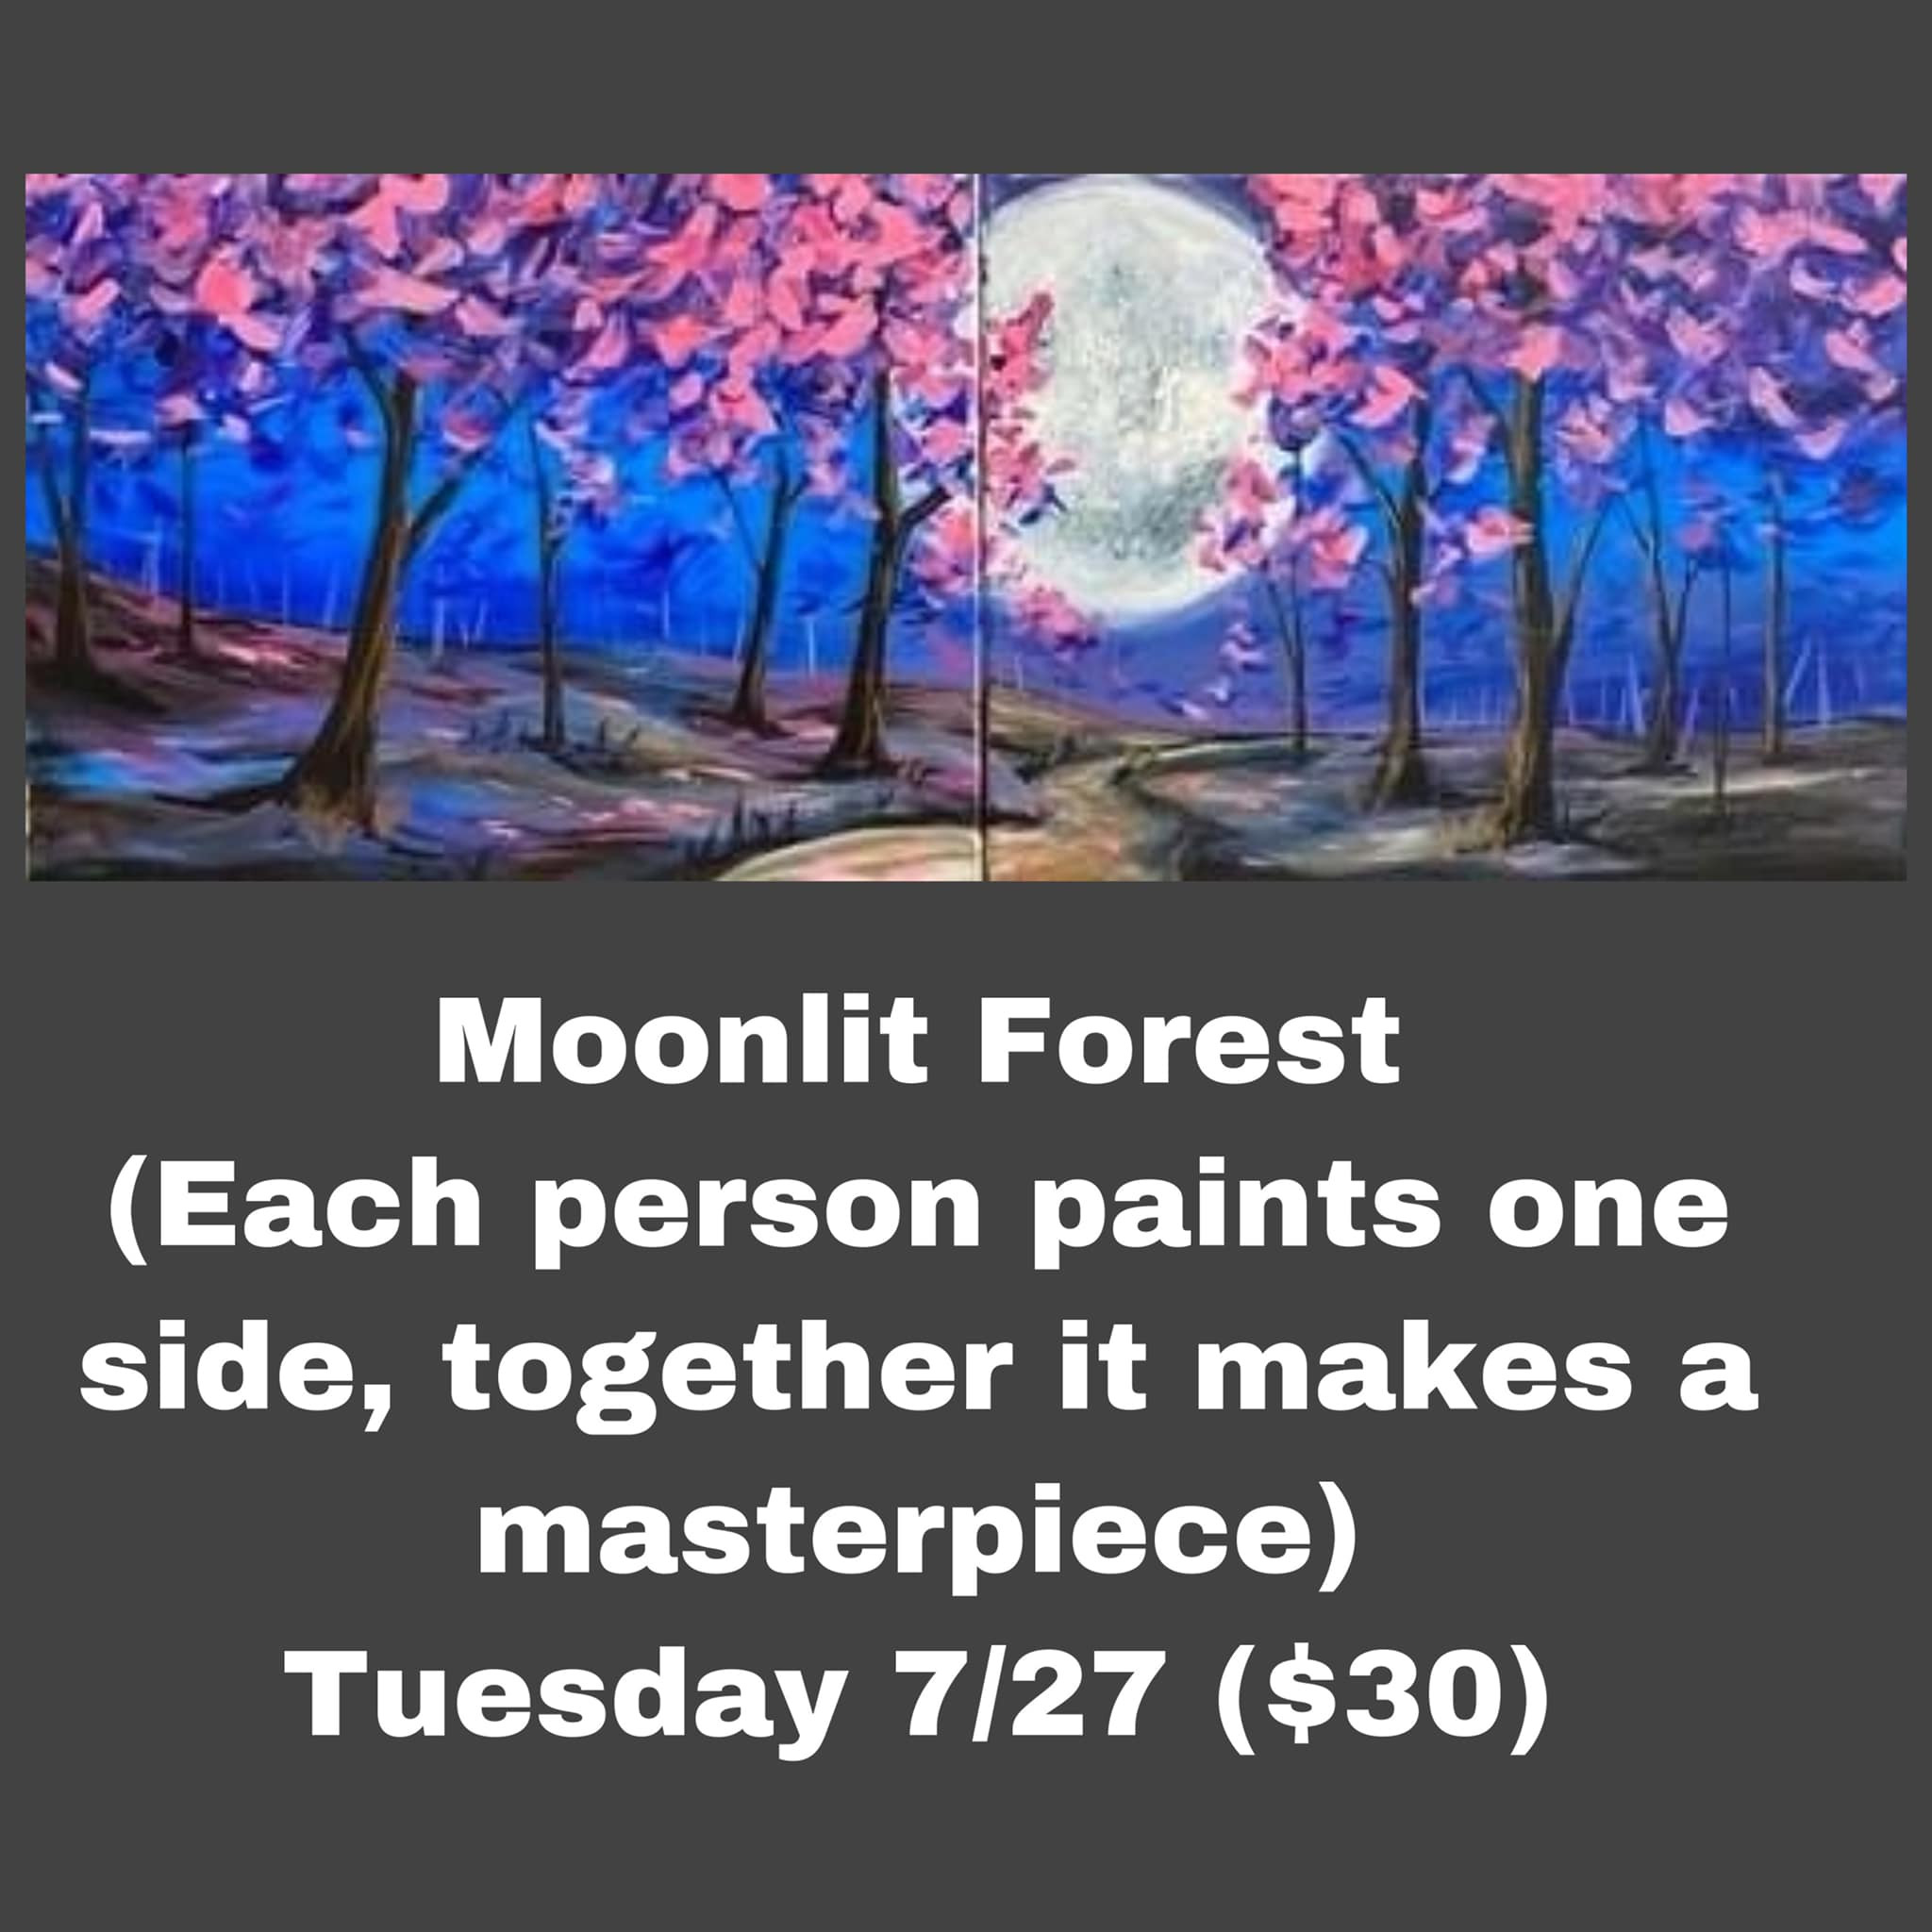 Budget Tues 7/28 - Moonlit Forest ($30)